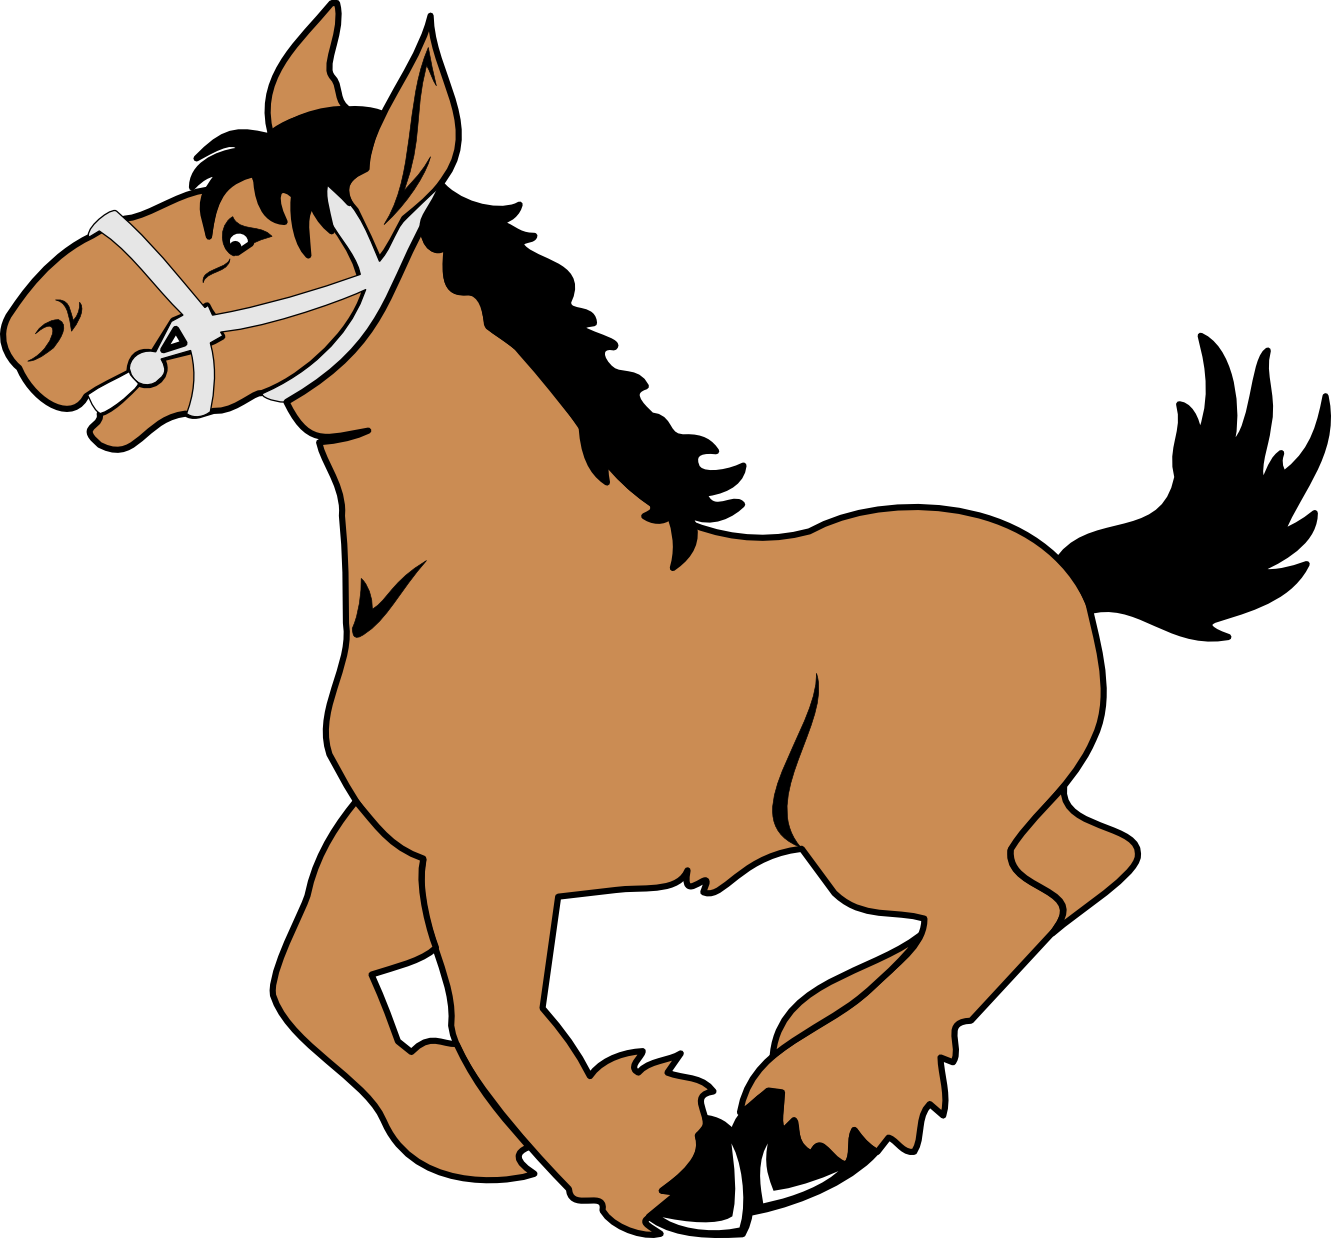 Clipart horse simple. Riding panda free images